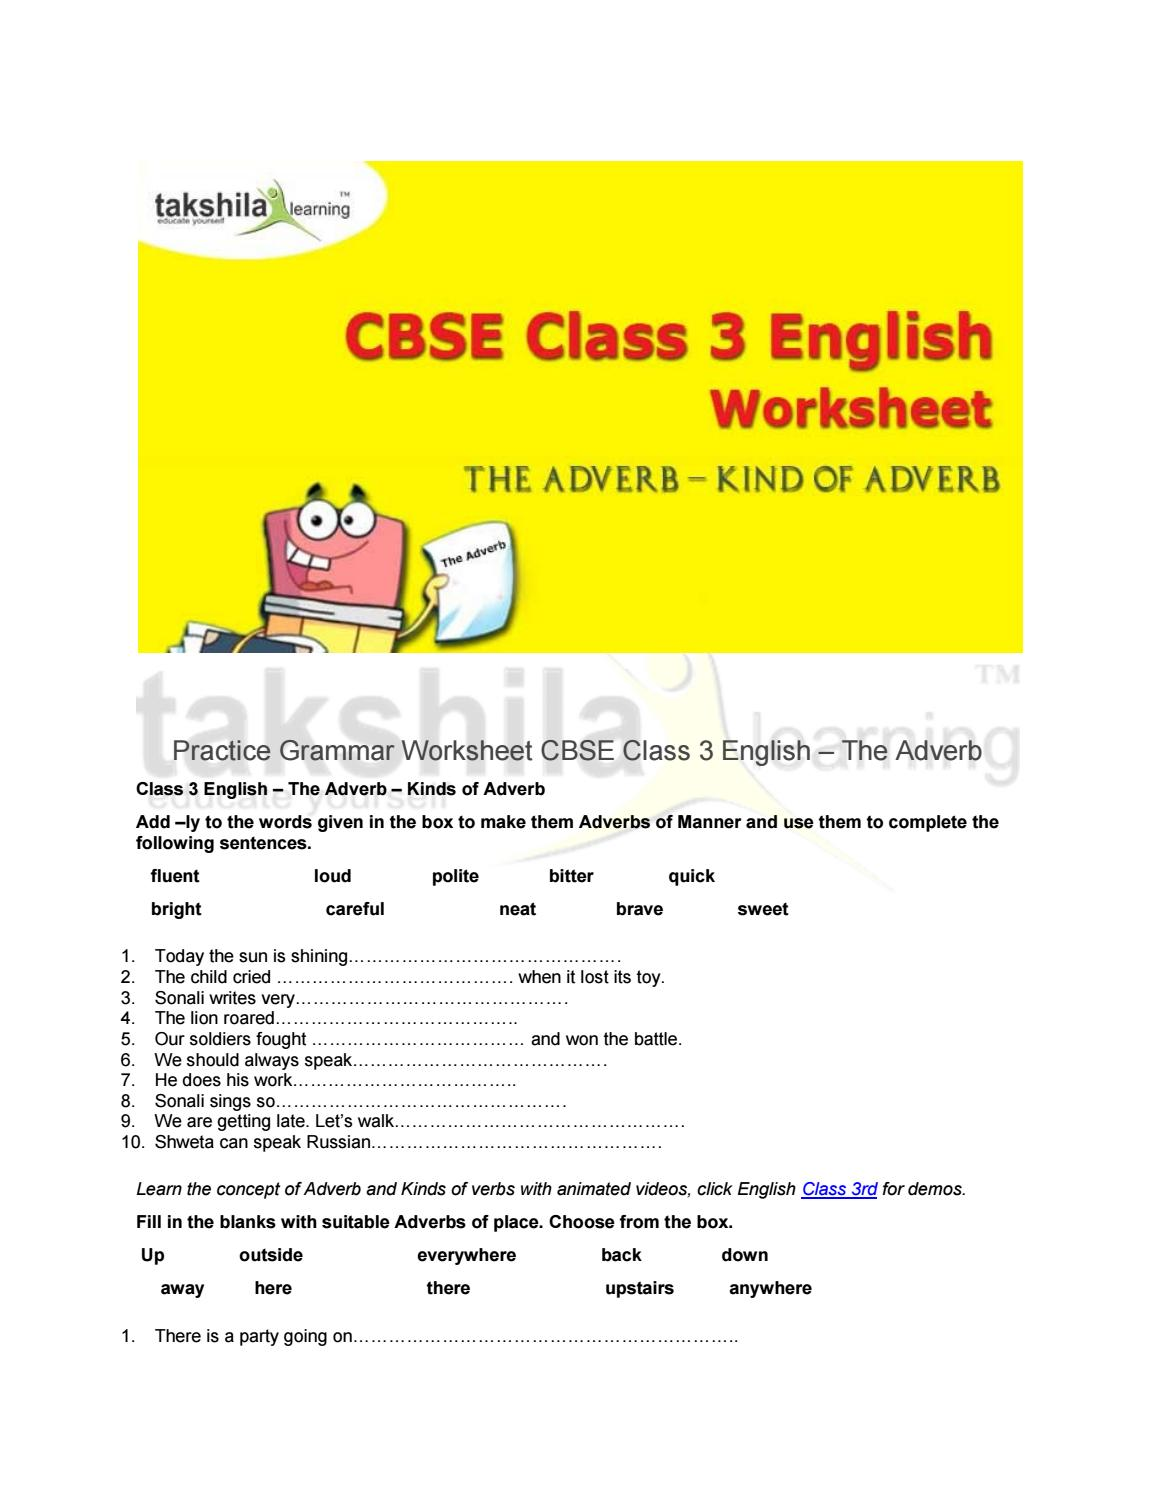 hight resolution of Practice grammar worksheet for cbse class 3 english the adverb by Takshila  learning   Online Classes - issuu